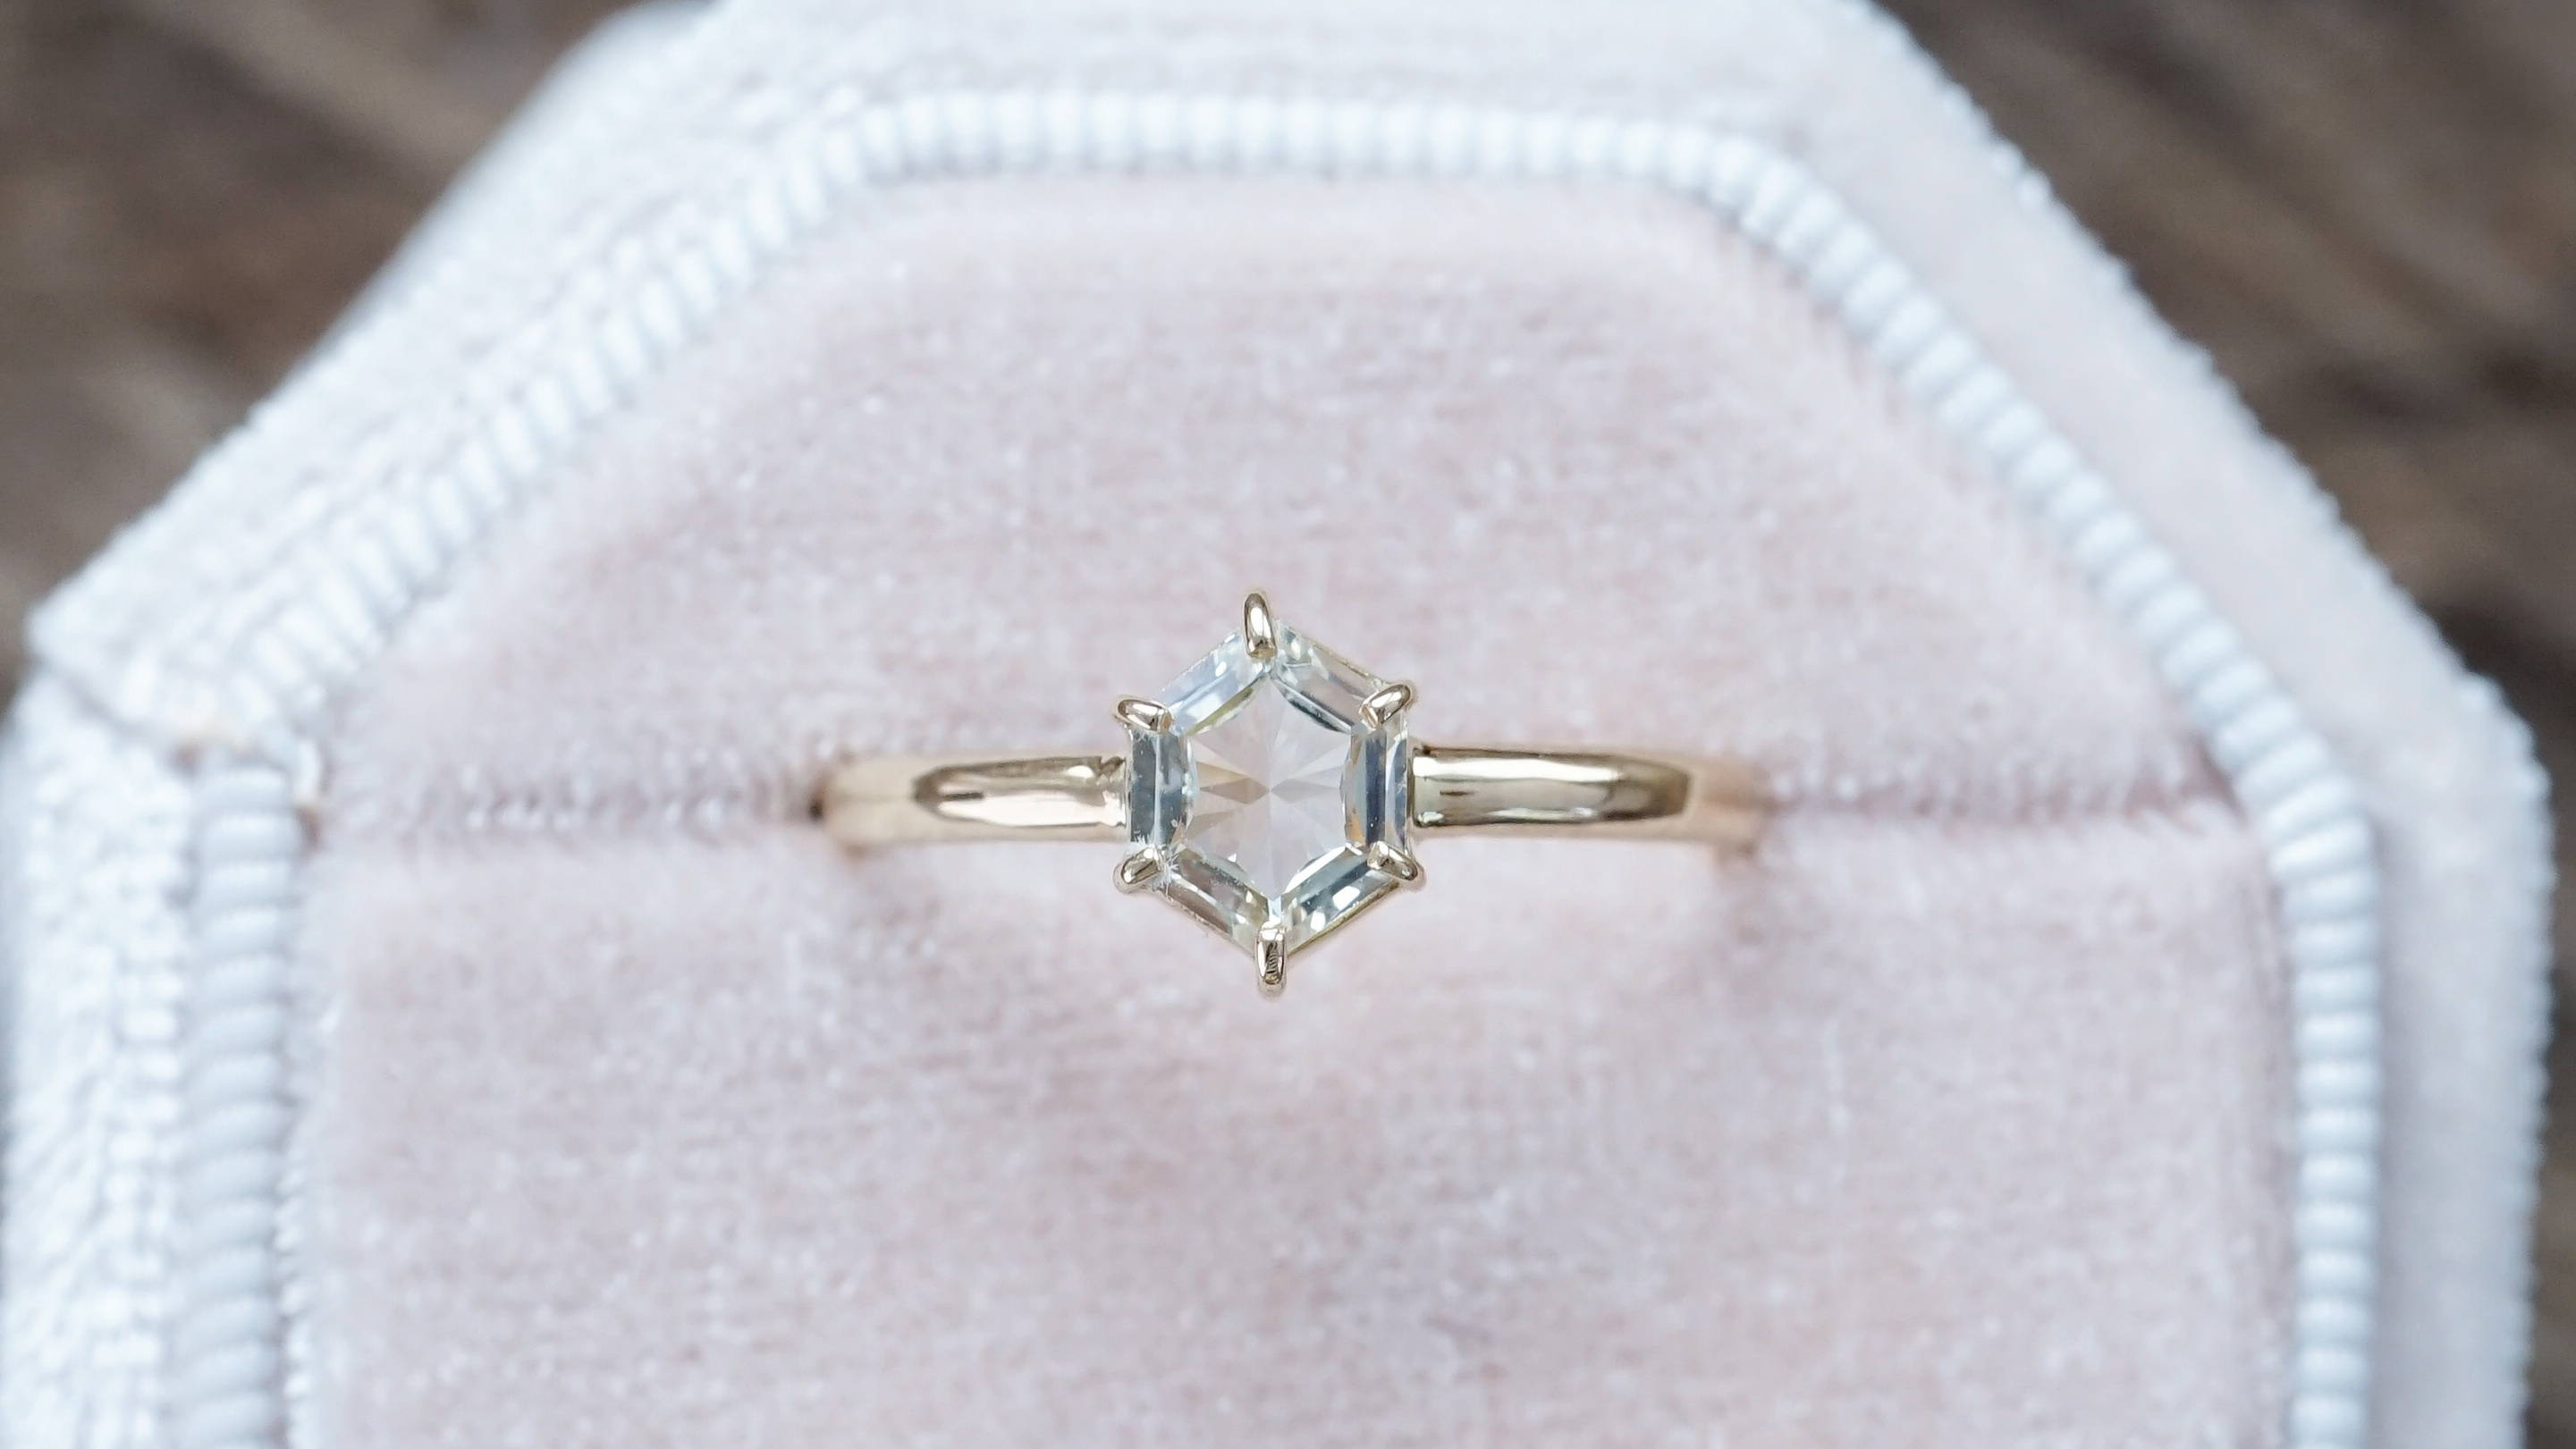 Ethical gold diamond ring